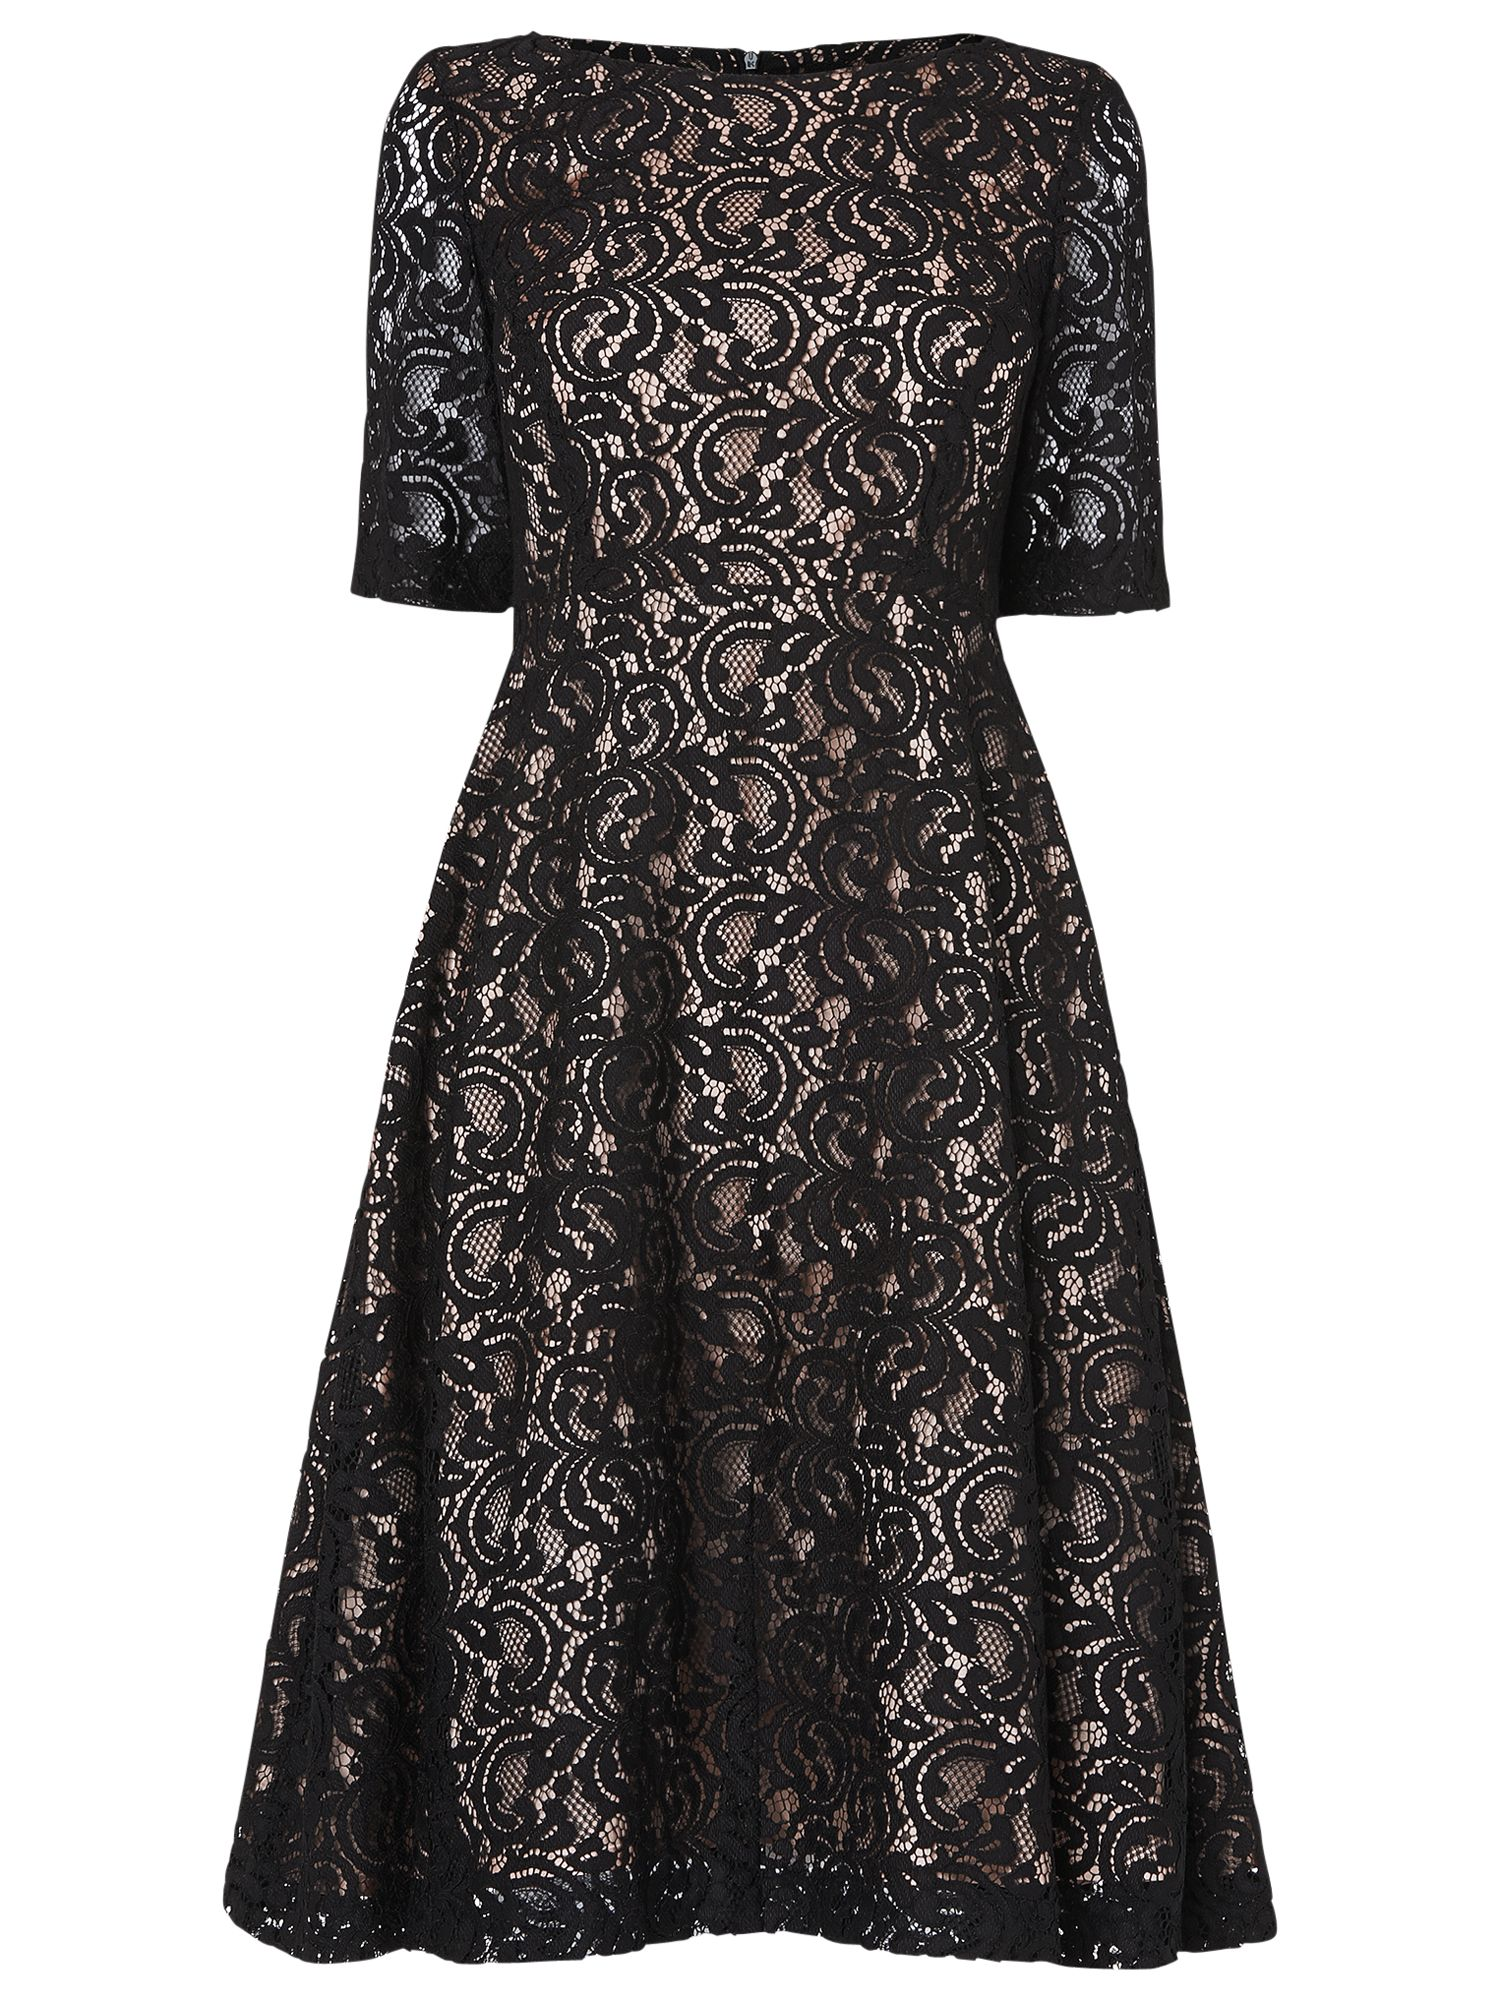 phase eight louanna lace dress black and nude, phase, eight, louanna, lace, dress, black, nude, phase eight, 12|8, clearance, womenswear offers, womens dresses offers, women, party outfits, lace dress, womens dresses, special offers, fashion magazine, brands l-z, inactive womenswear, 1673139